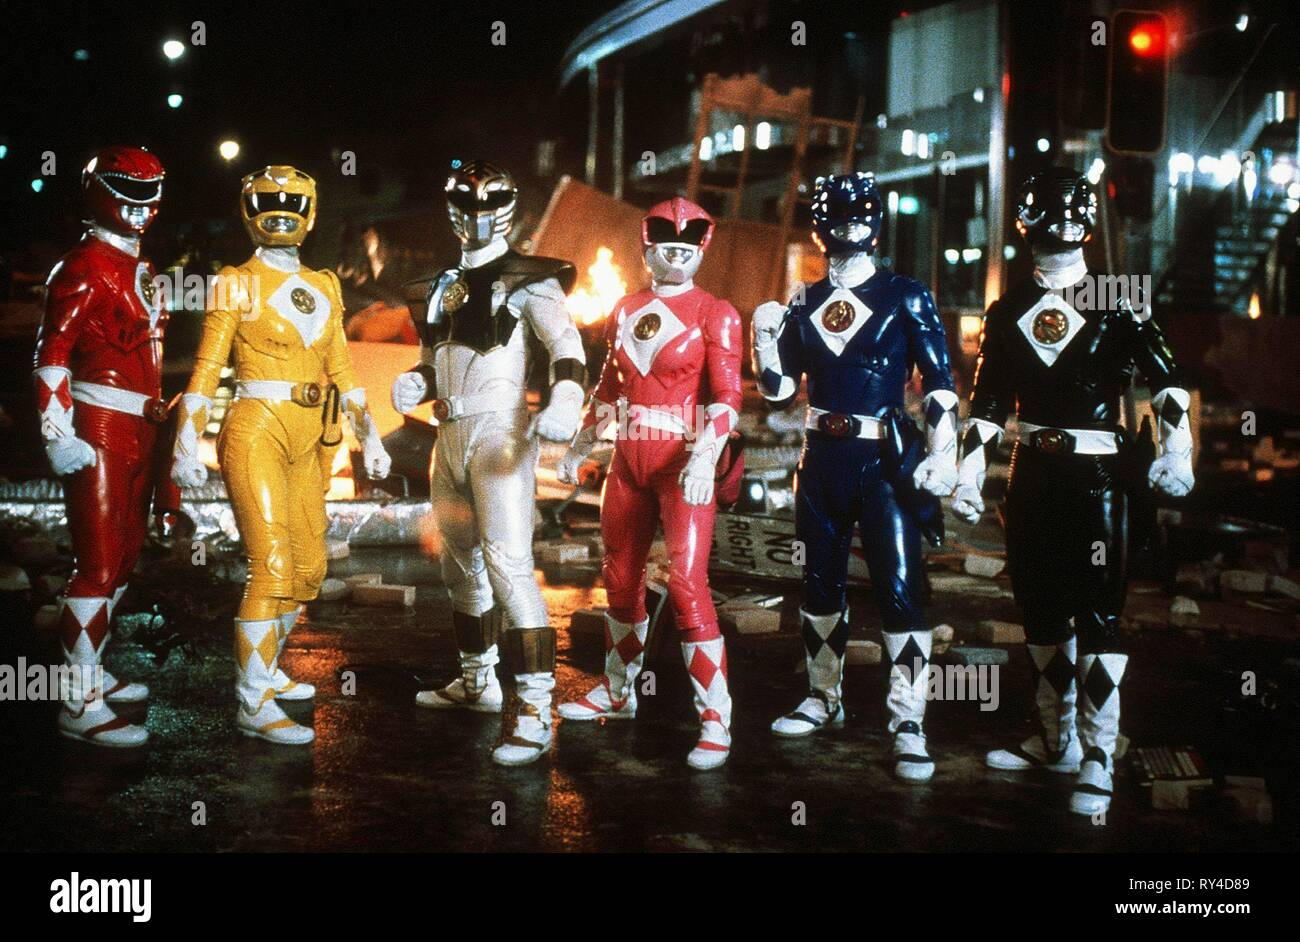 CARDENAS,ASHLEY,FRANK,JOHNSON,YOST,BOSCH, MIGHTY MORPHIN POWER RANGERS: THE MOVIE, 1995 - Stock Image